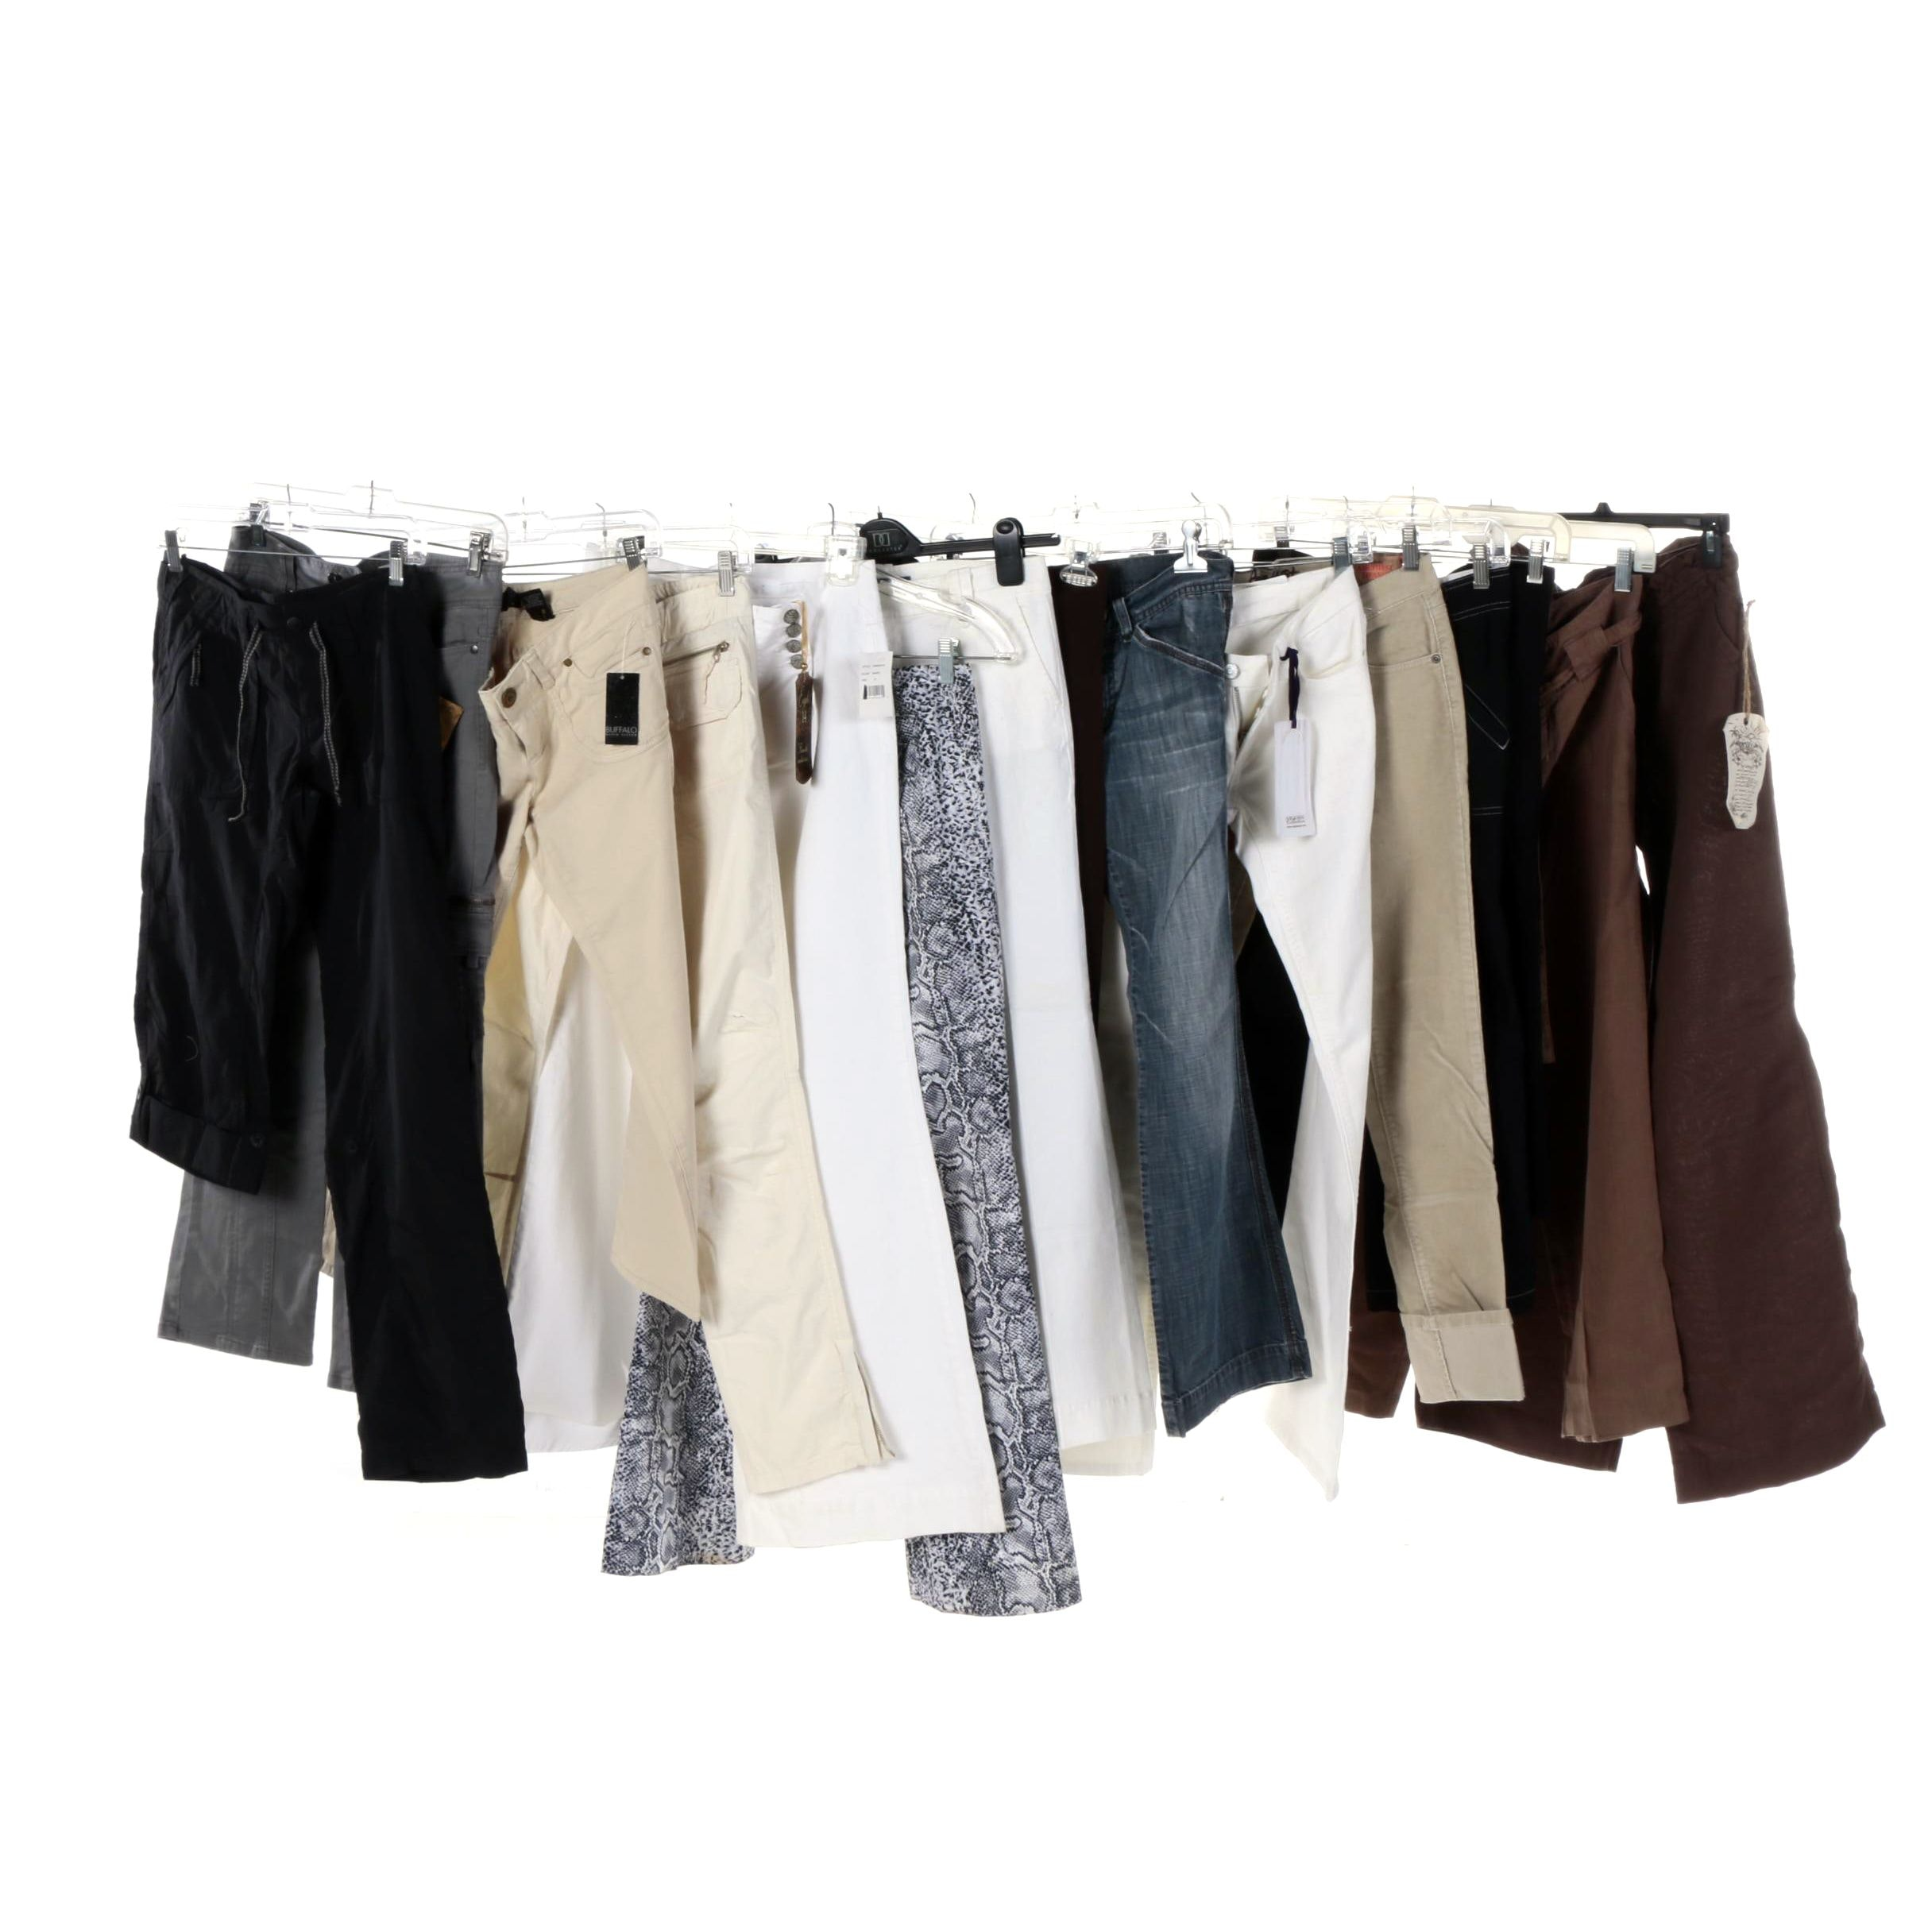 Women's Pants and Jeans Including Diesel, The North Face and Juicy Couture